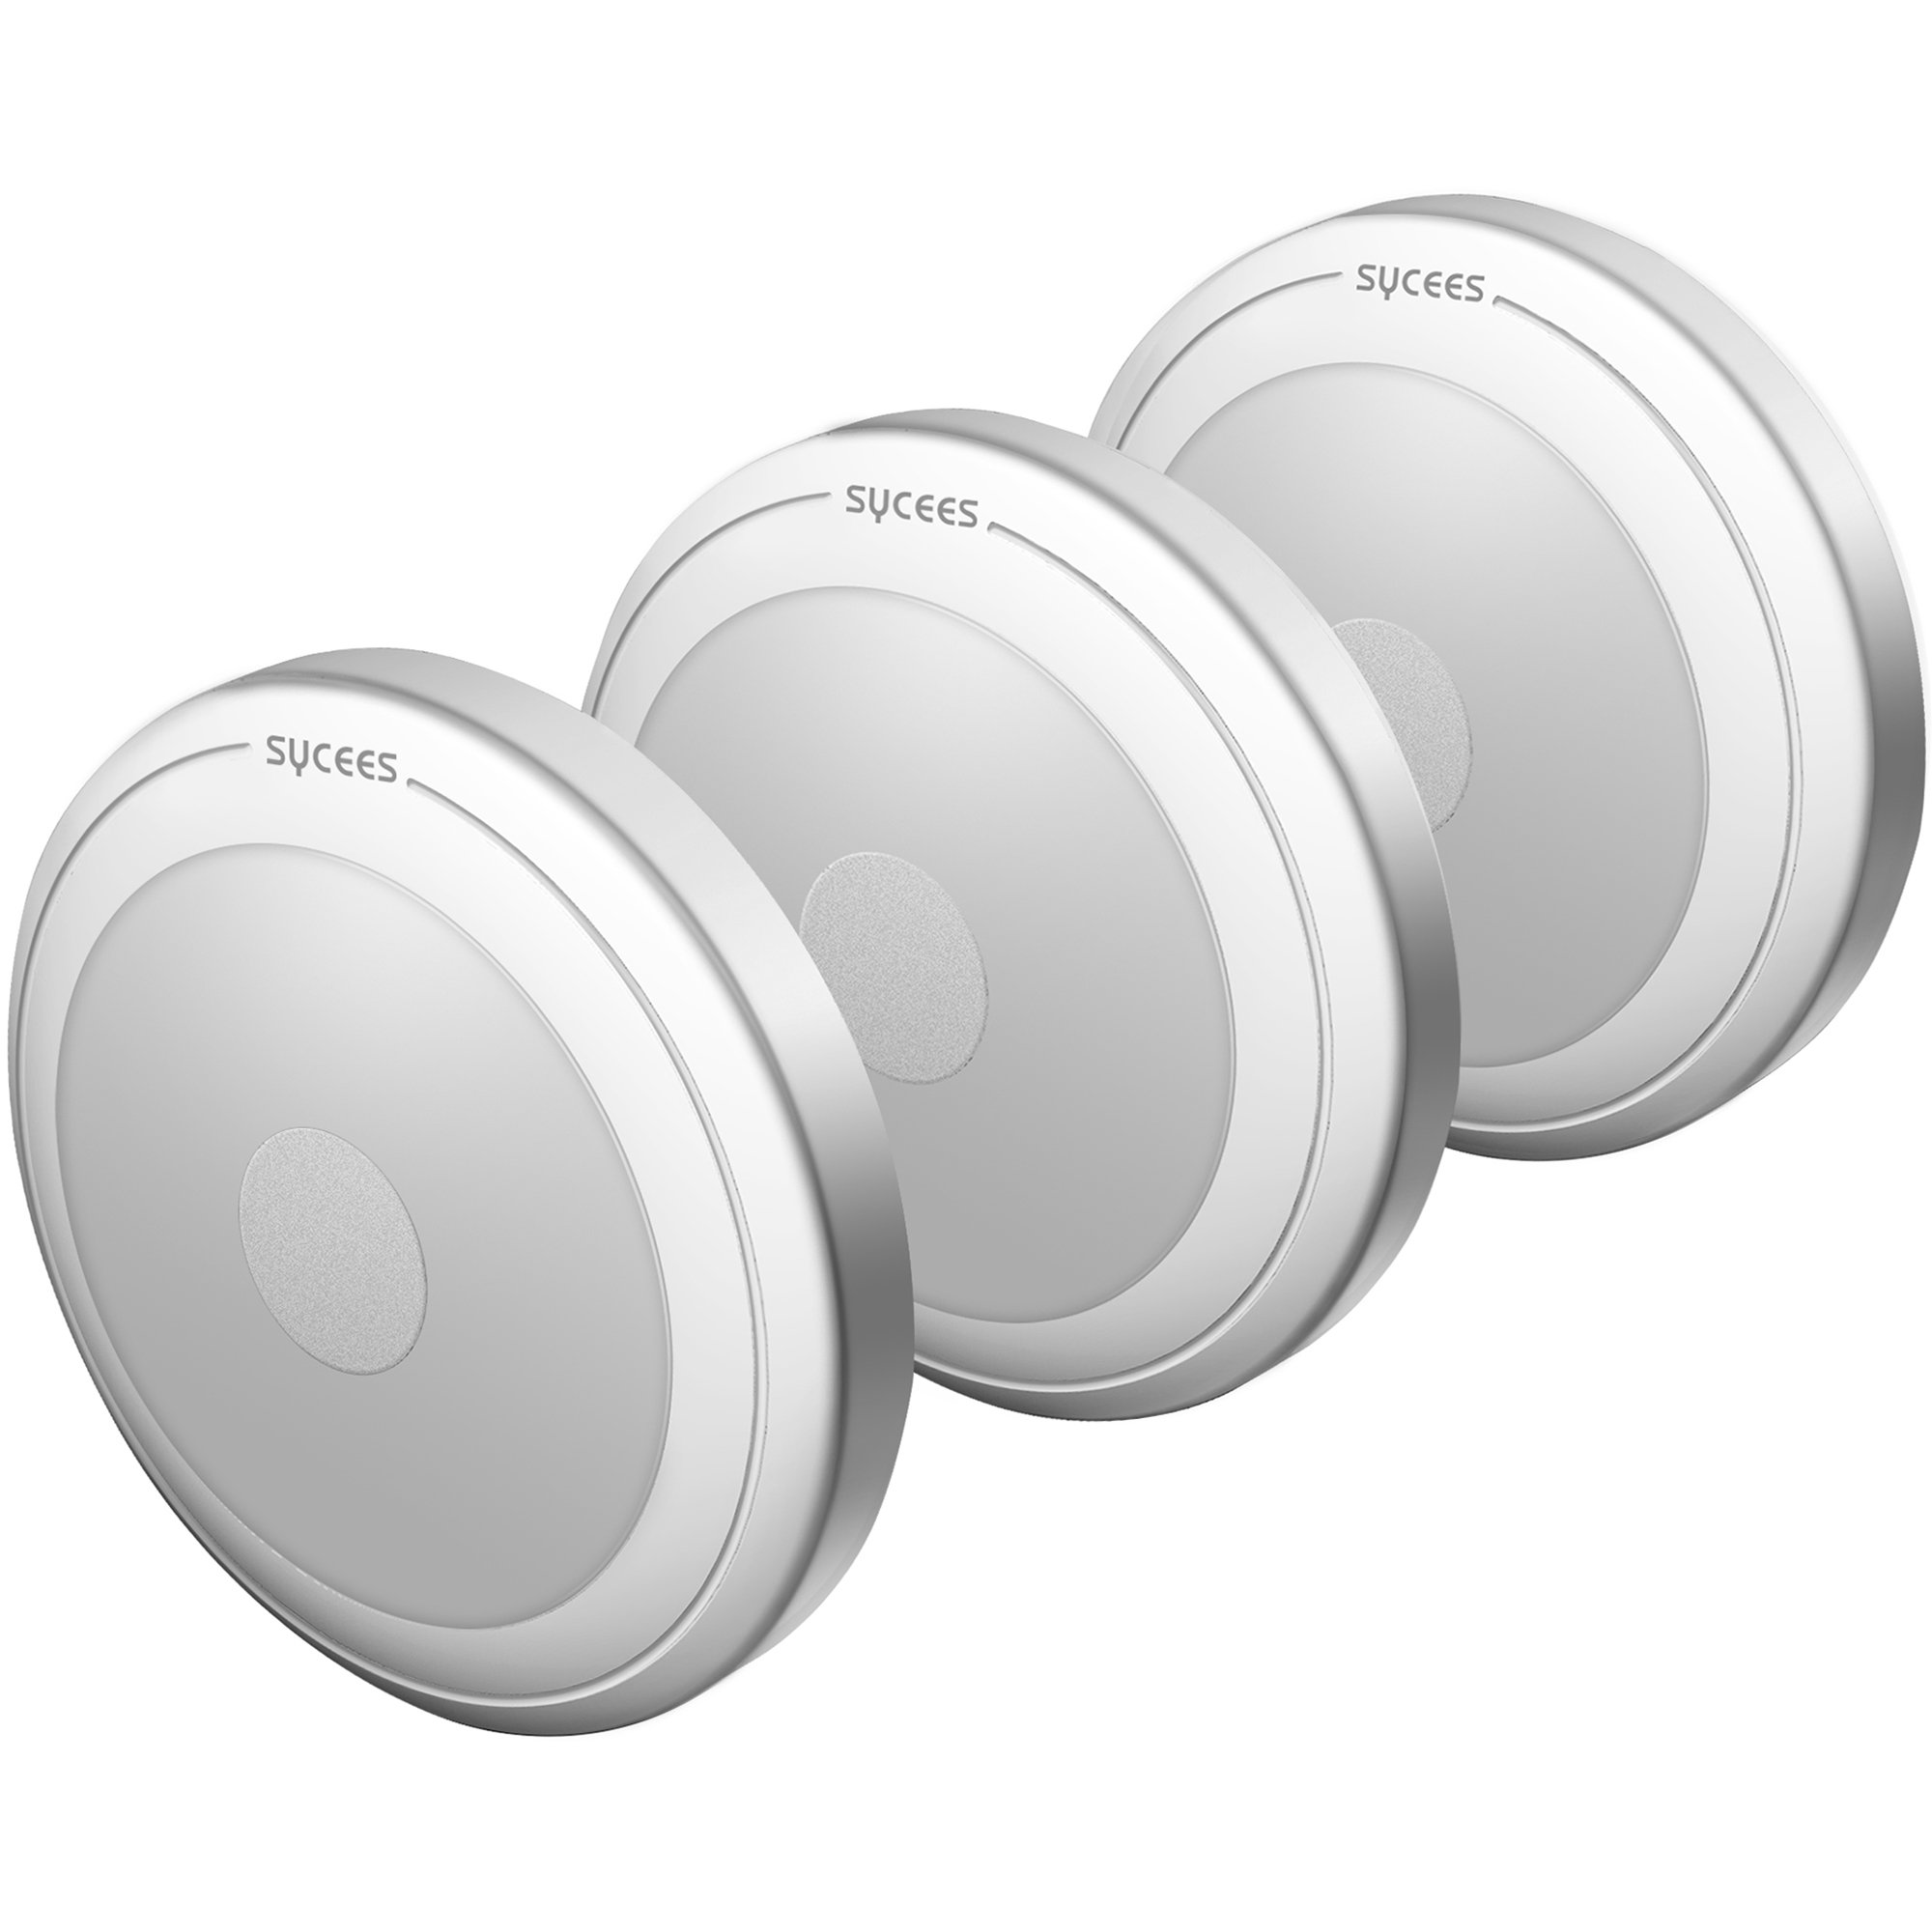 Sycees Touch Activated LED Puck Lights, Dimmable, Battery Operated, Stick on Anywhere, Warm White, 3-Pack